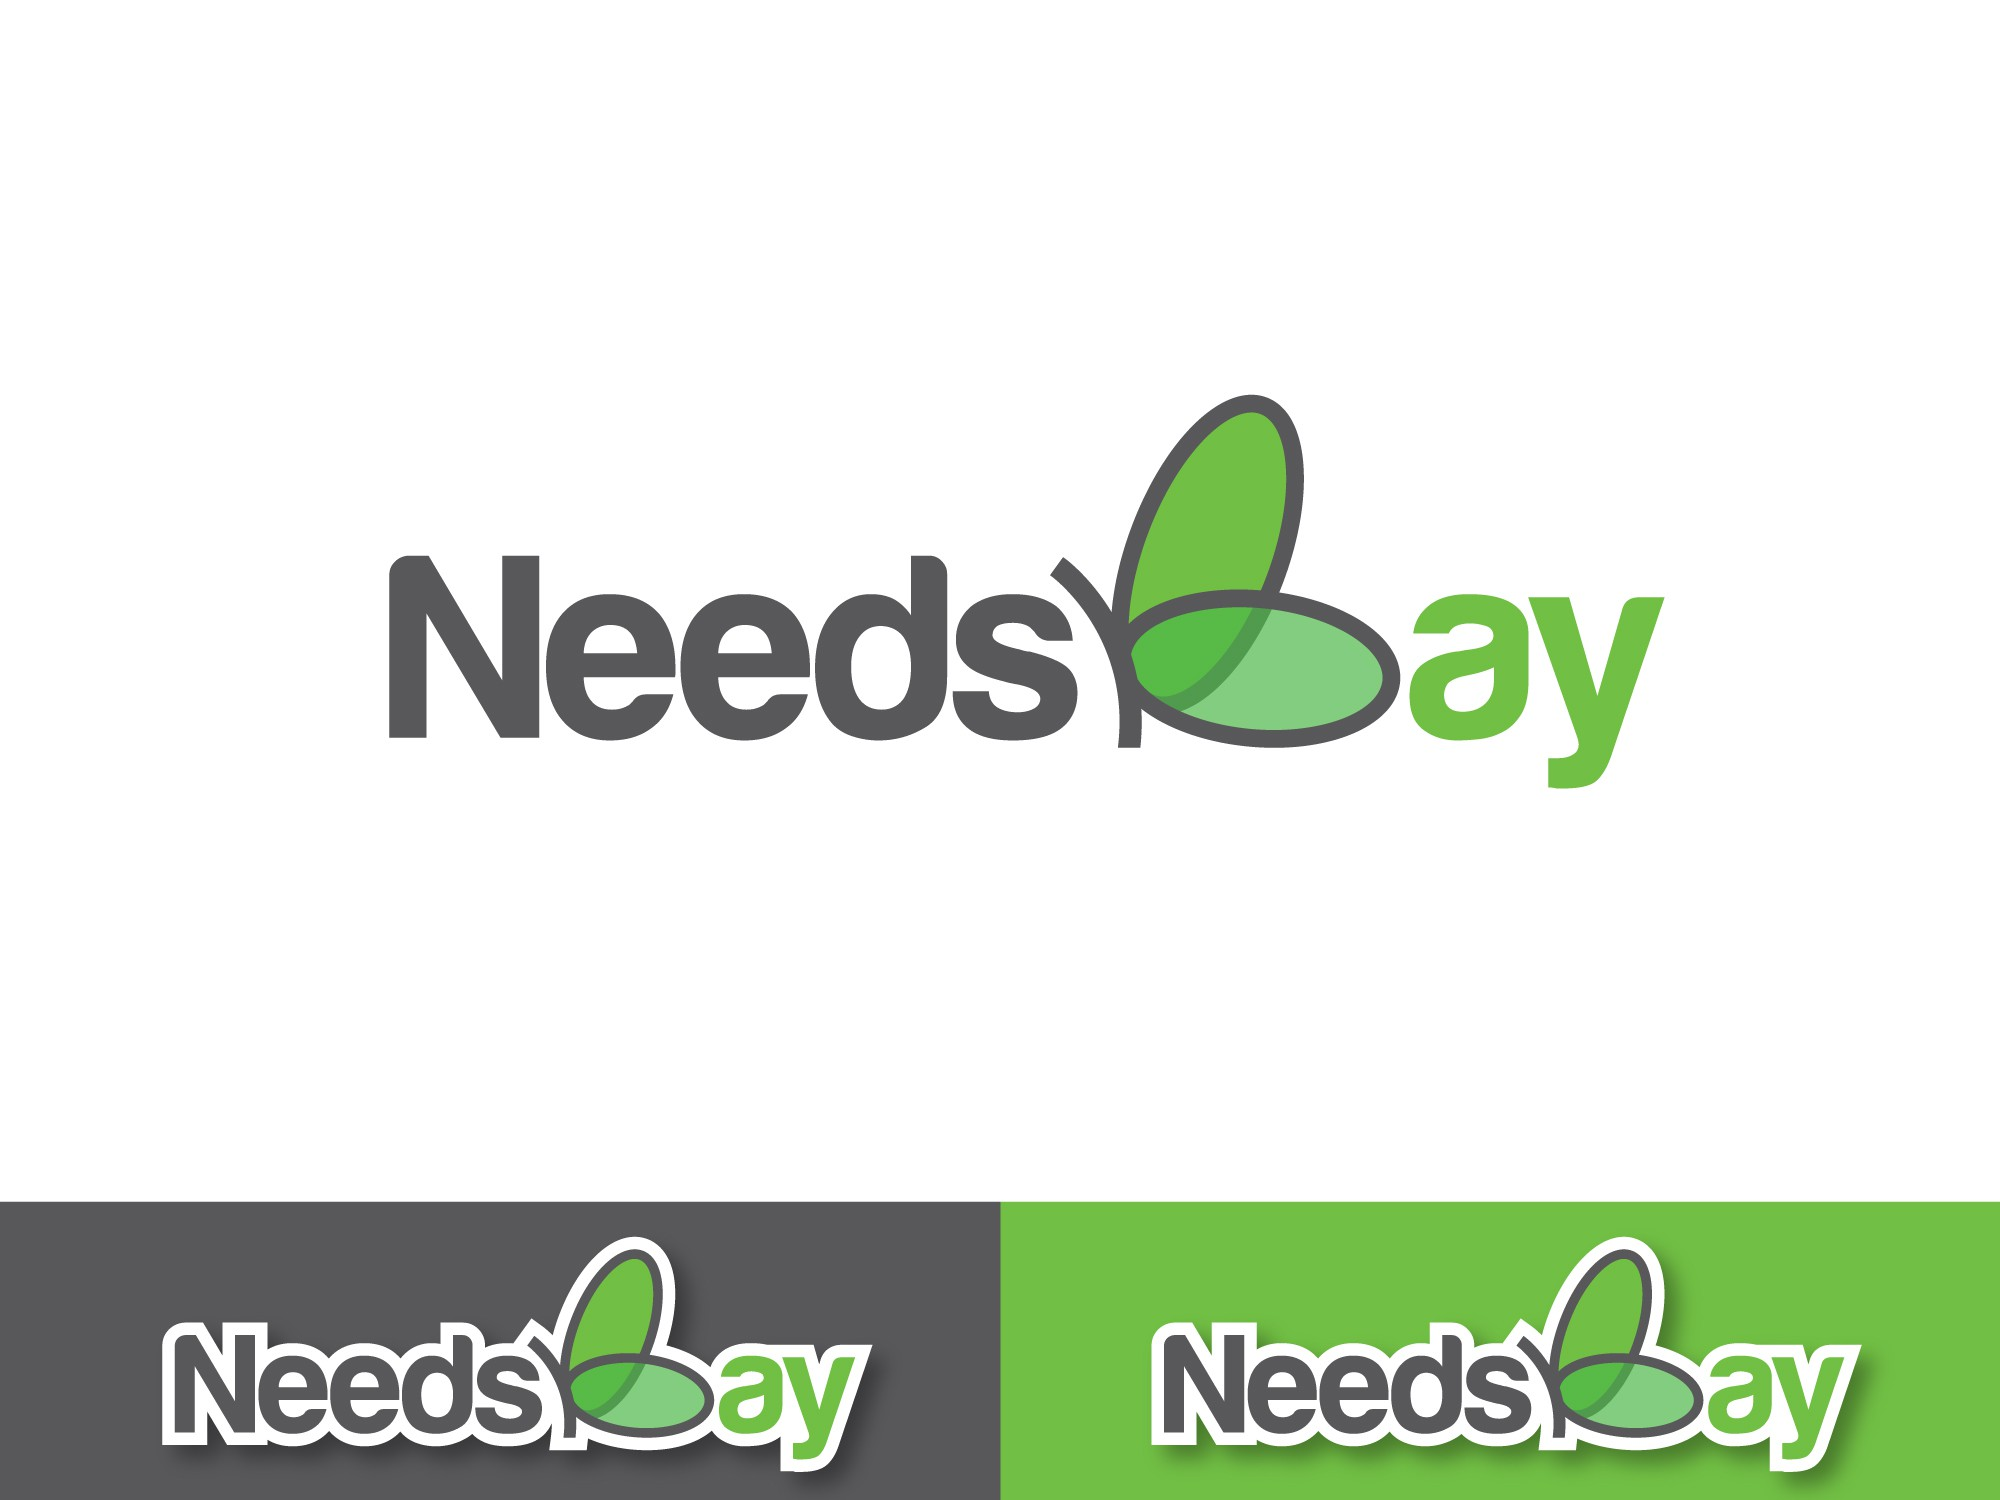 Create an eye catching logo for a niche health online marketplace called Needsbay